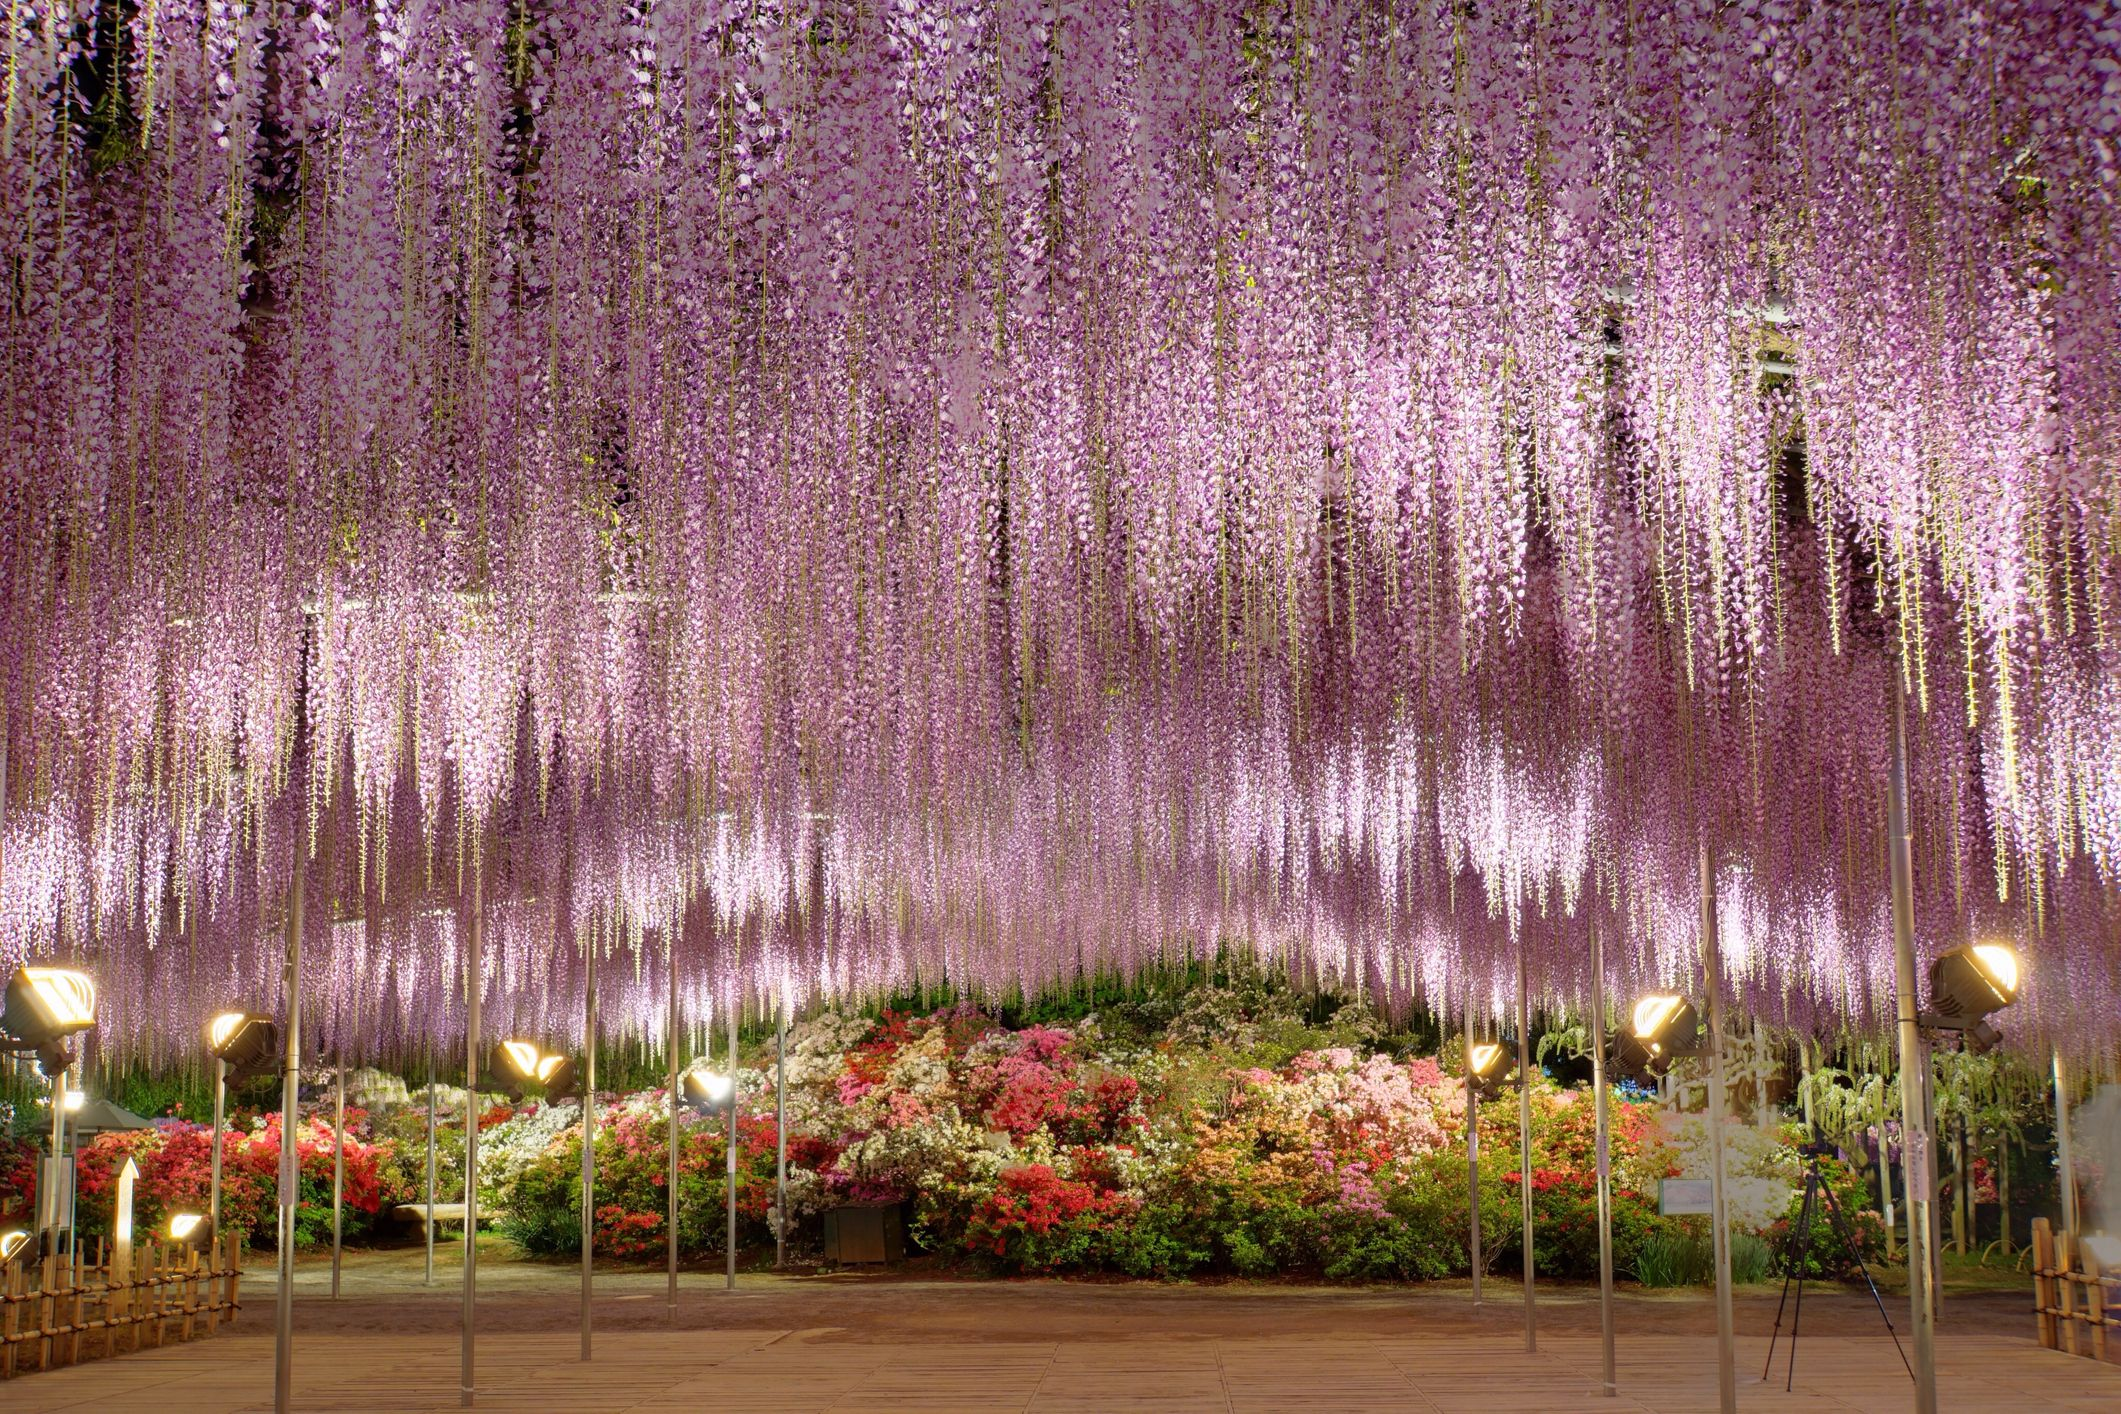 Japan S Wisteria Gardens Are A Must See When To Visit Wisteria Gardens Japan